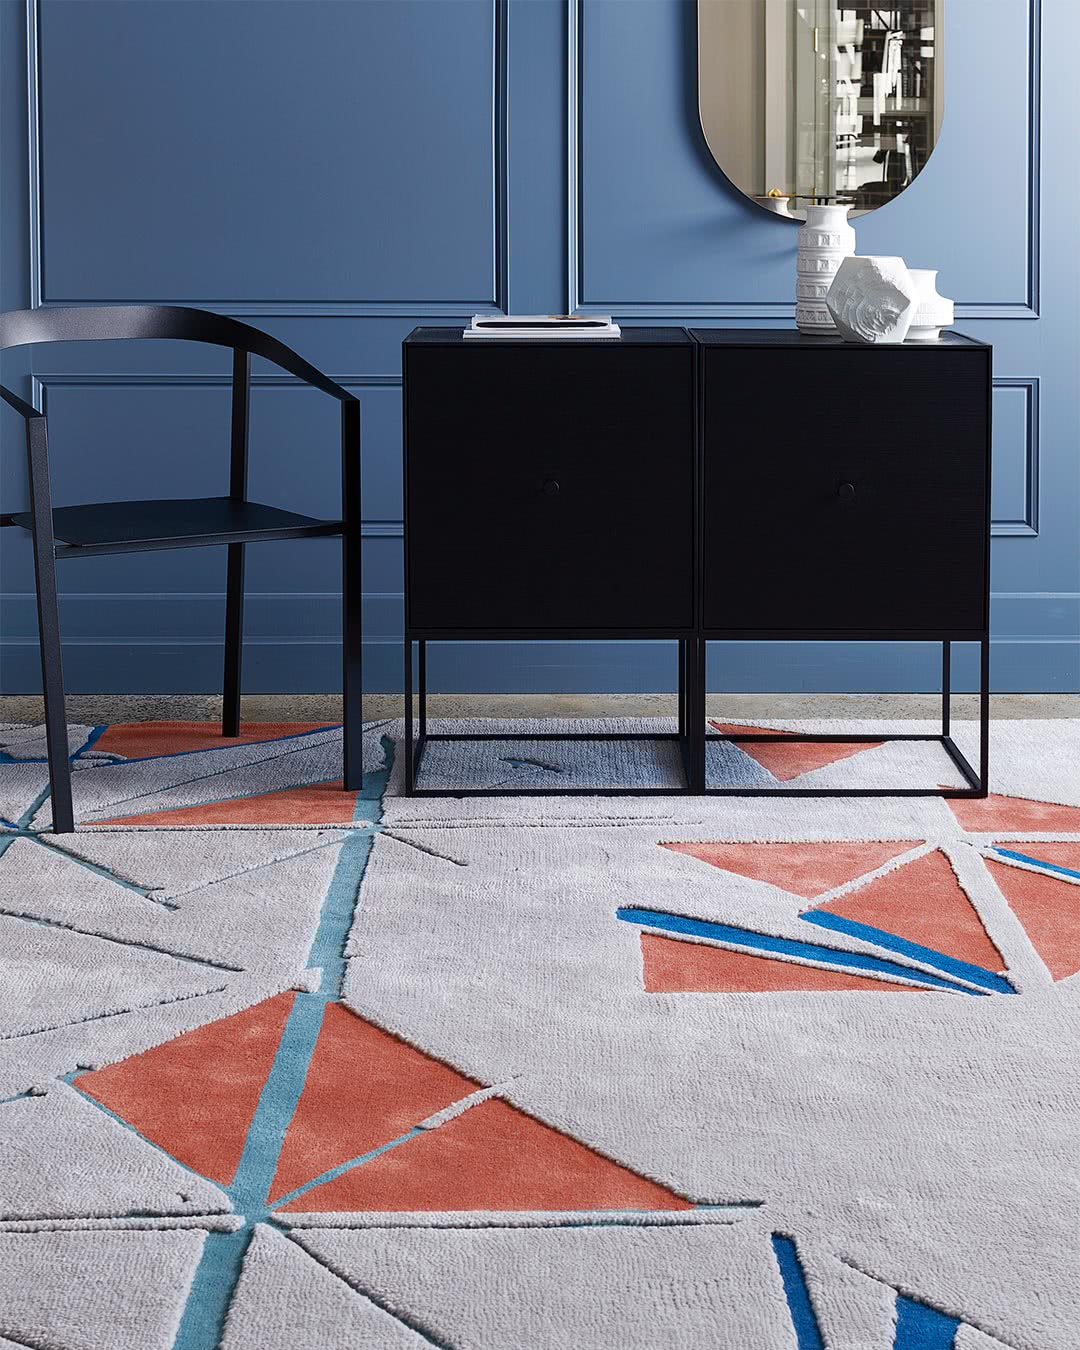 Styled setting of the geometric and modern Despatch rug design in orange and teal